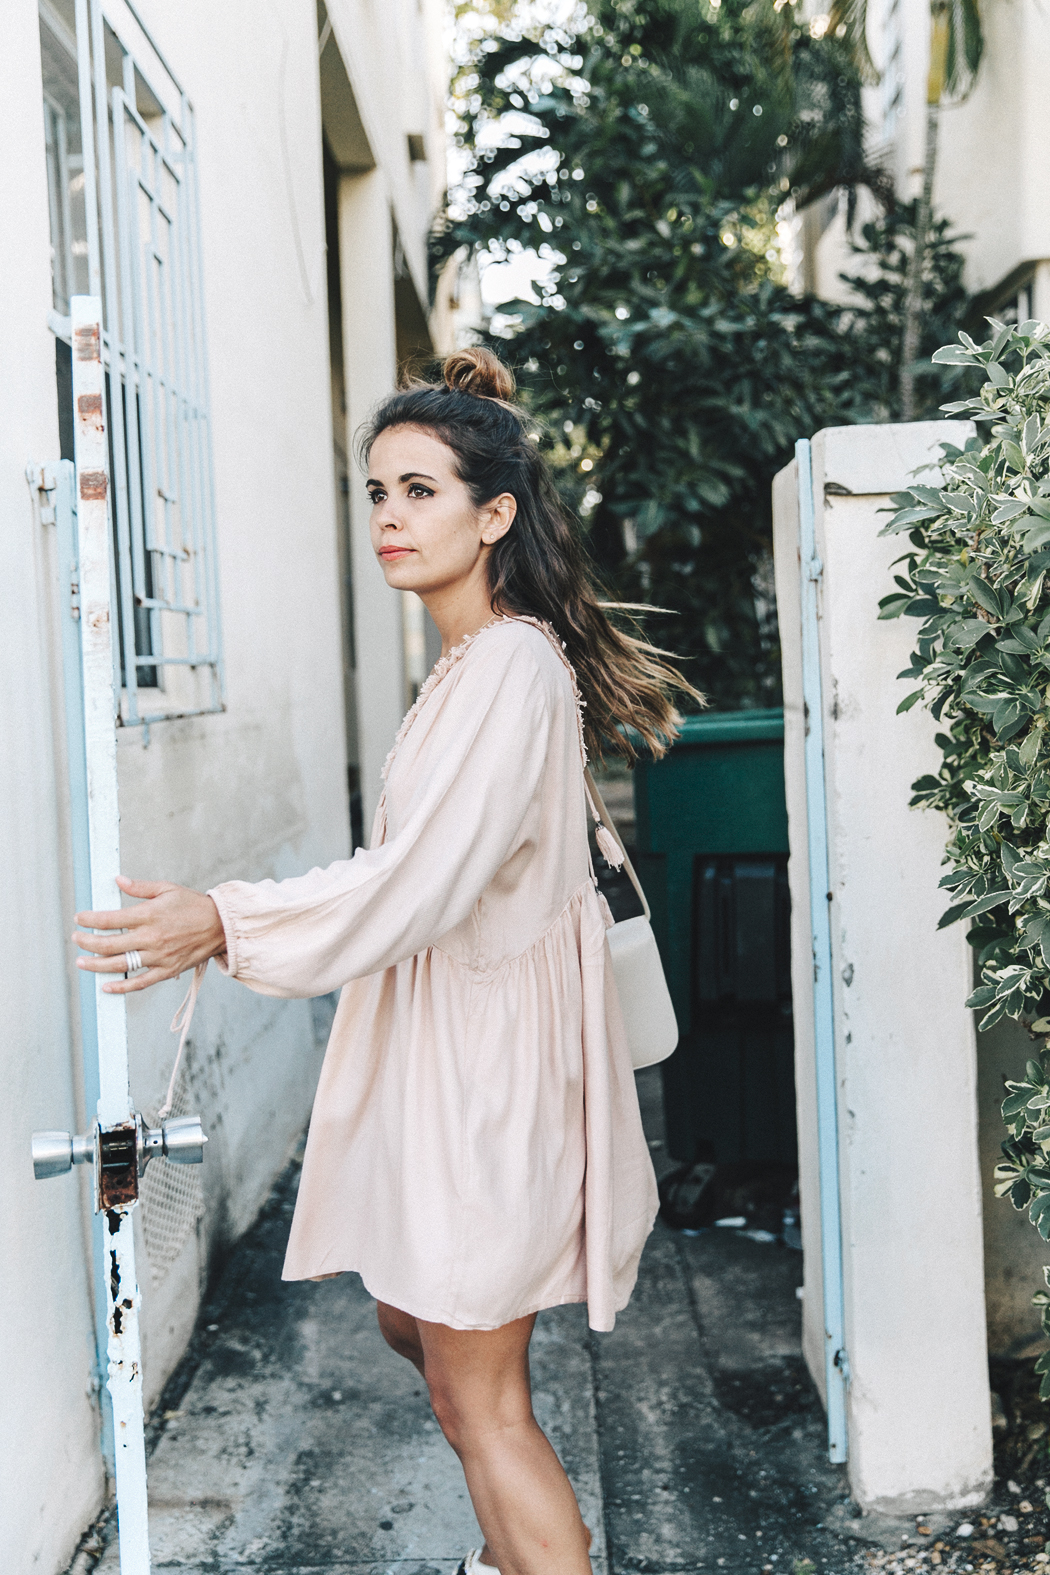 Miami-Pink_Dress-Marni_Sandals-Outfit-Collage_On_The_Road-Street_Style-15